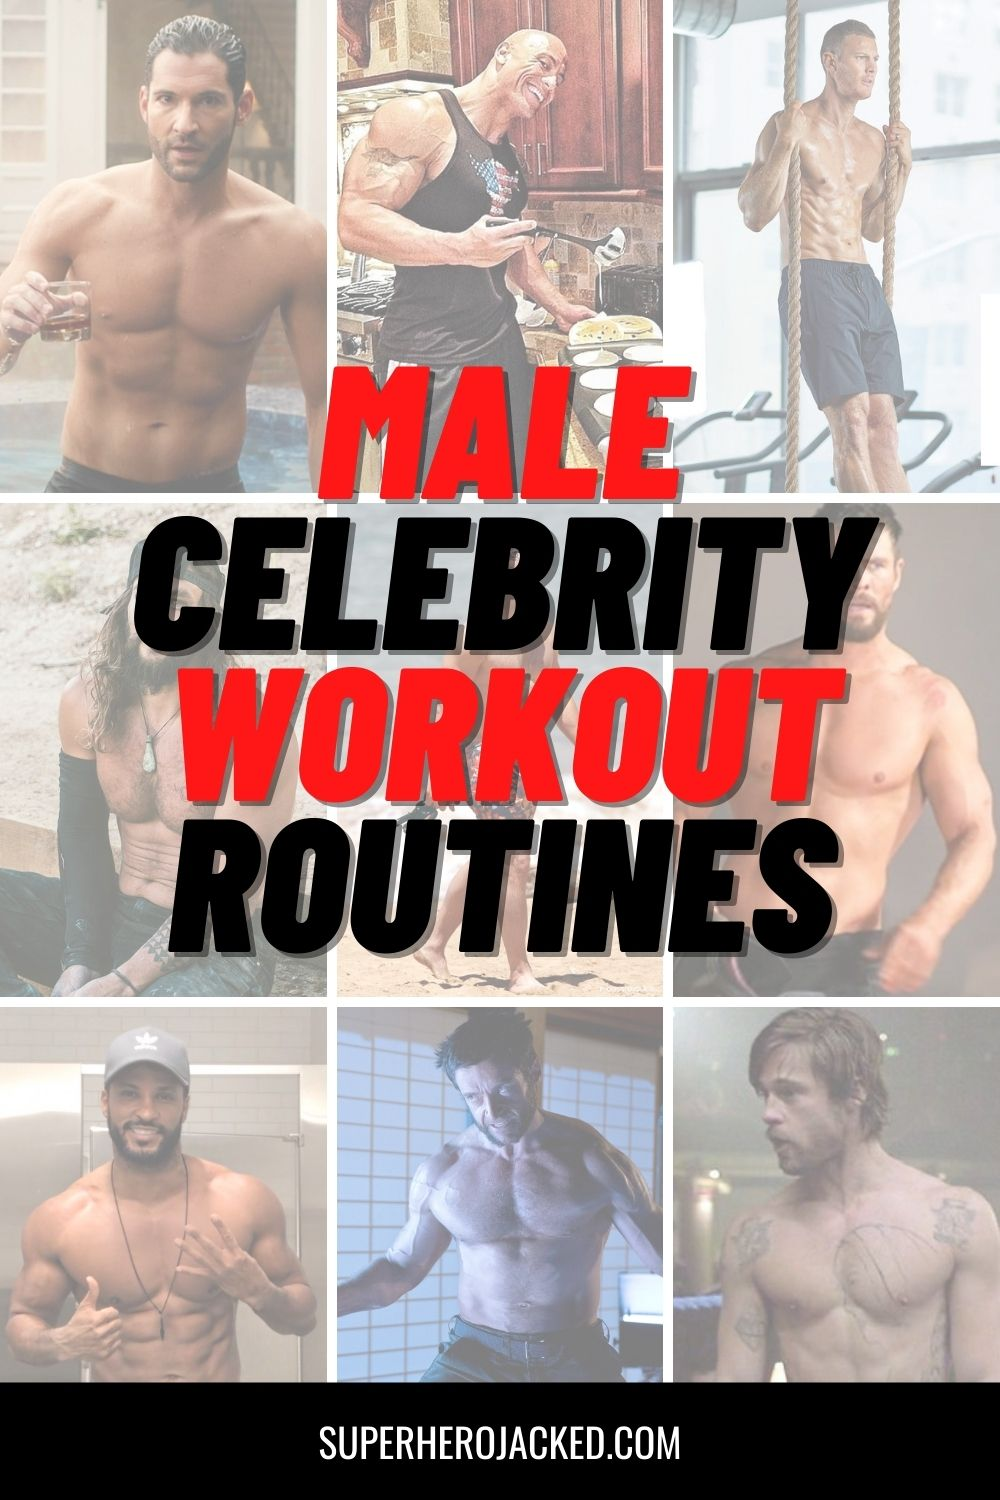 Male Celebrity Workout Routines